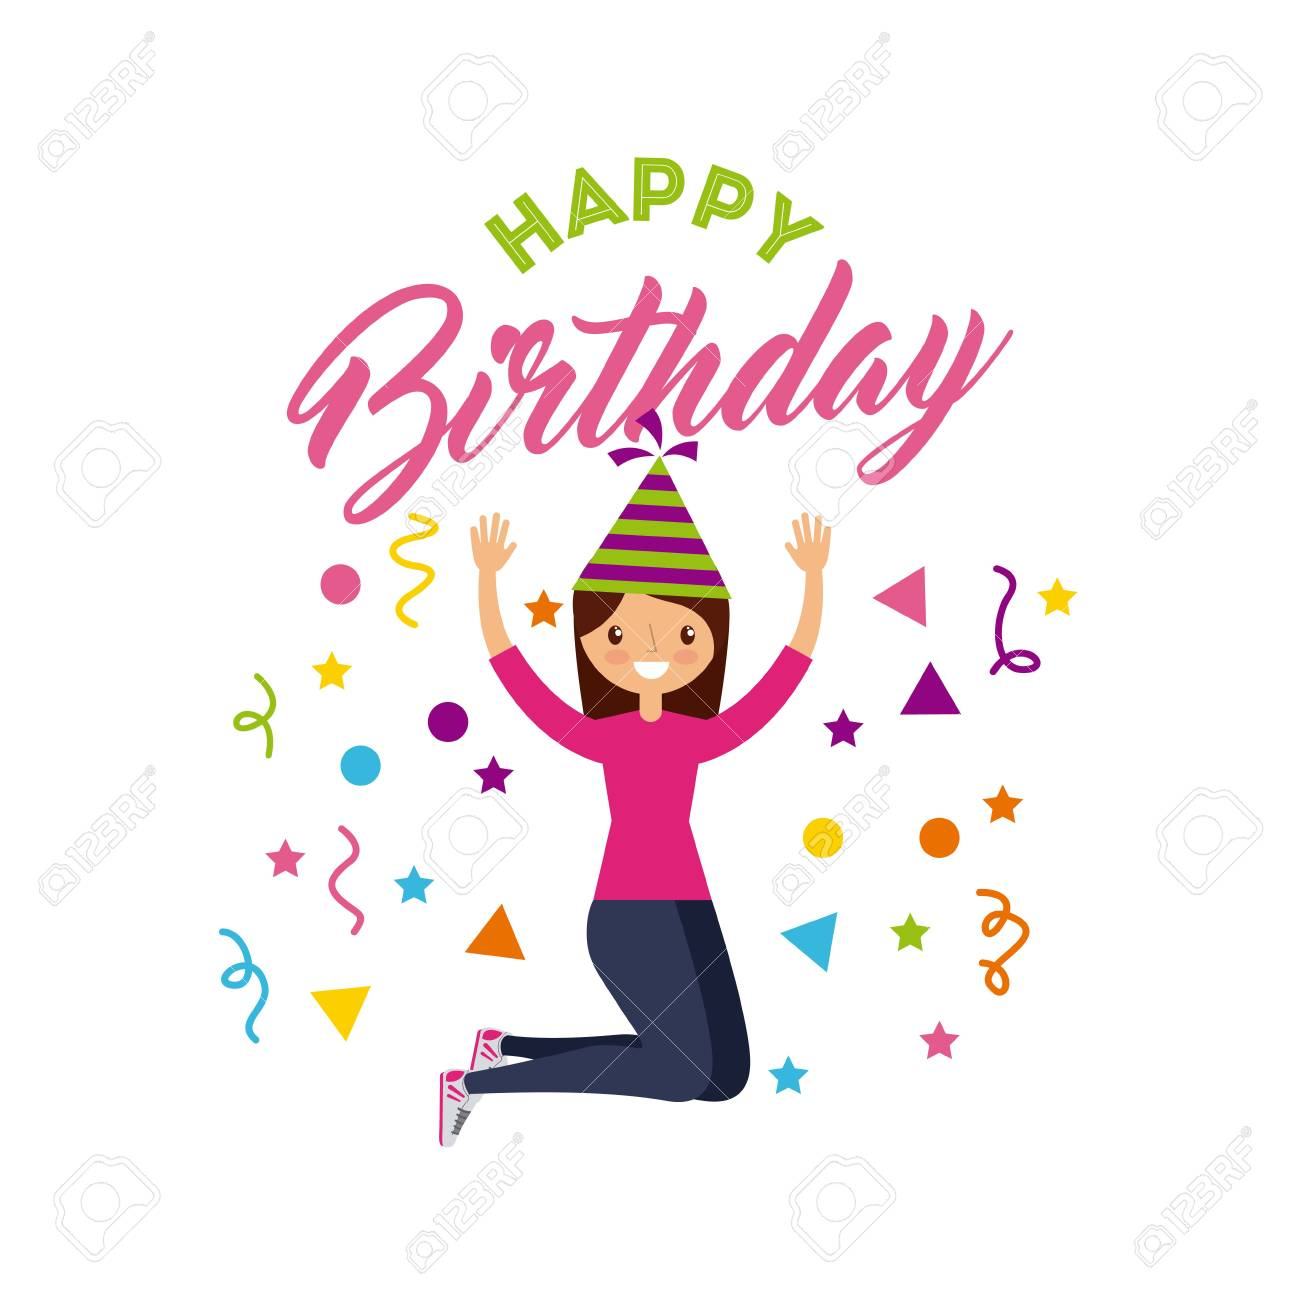 Happy Birthday Card With Girl Wearing A Party Hat Over White Background Colorful Design